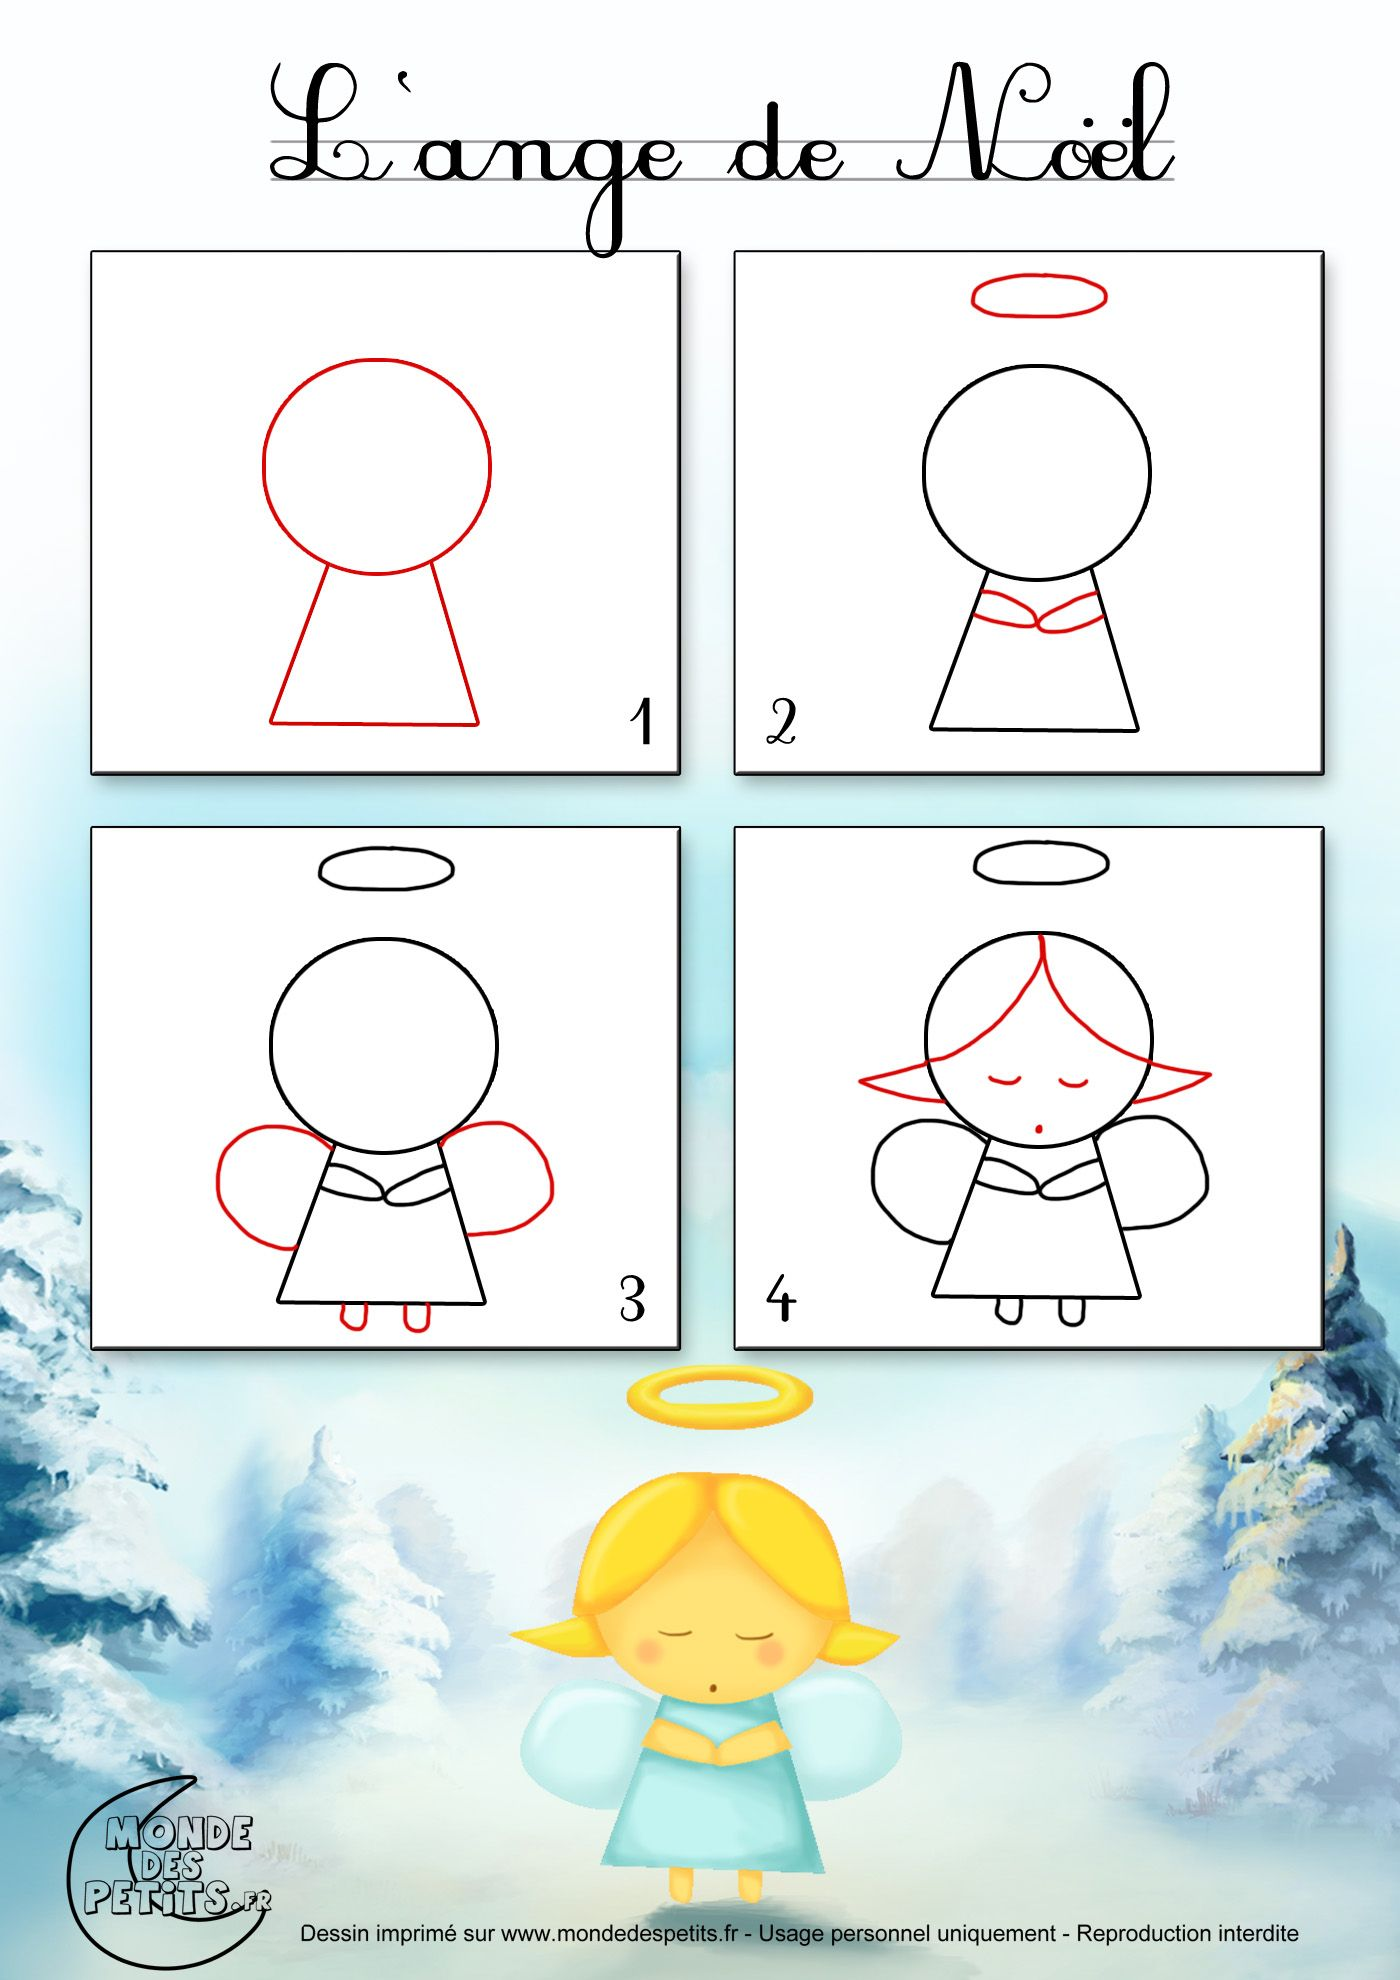 Dessin2 comment dessiner un ange de no l xmas for Apprendre les tables facilement